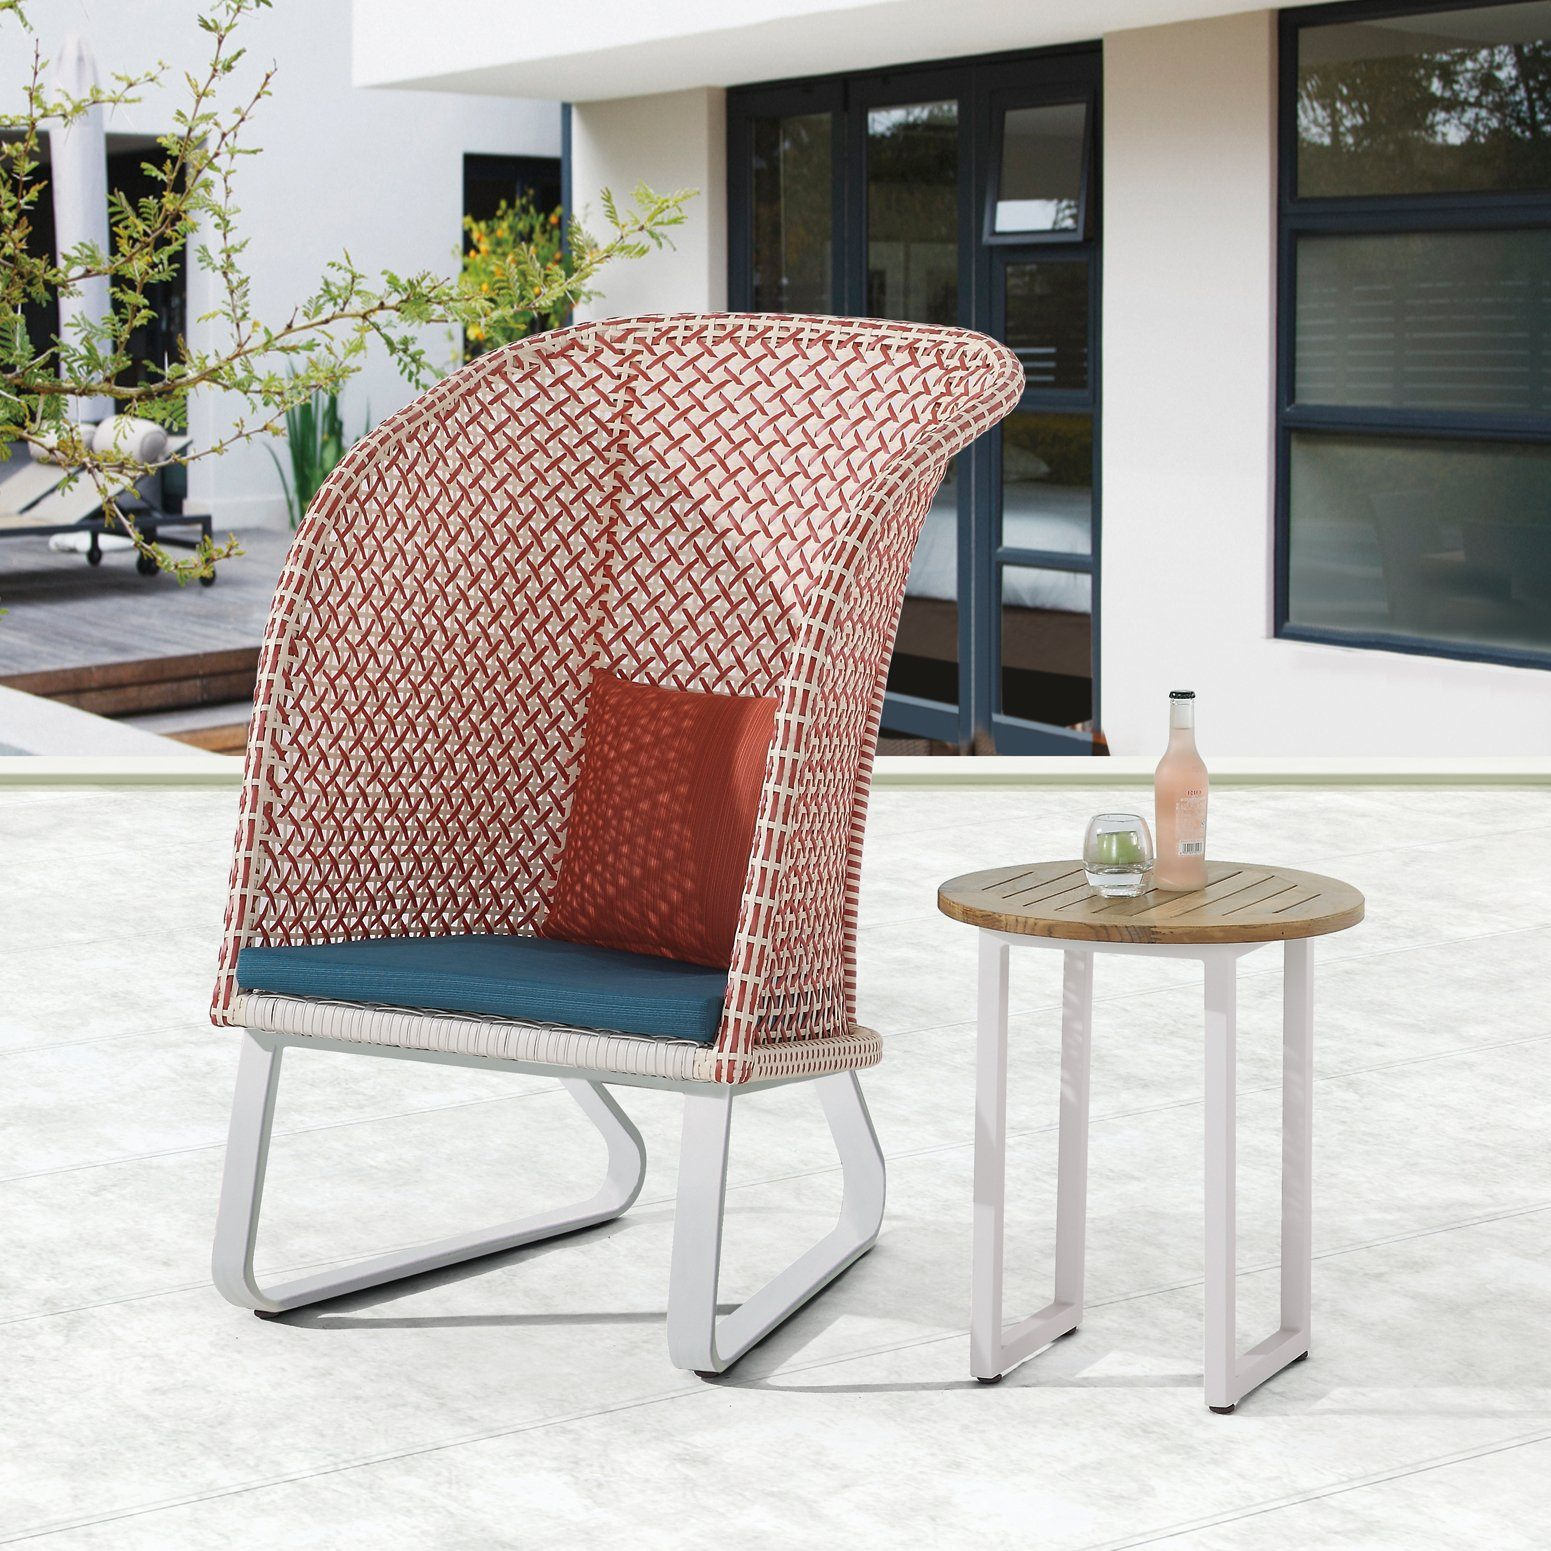 Evian High Back Outdoor Lounge Chair Tb Outdoor Design Outdoor